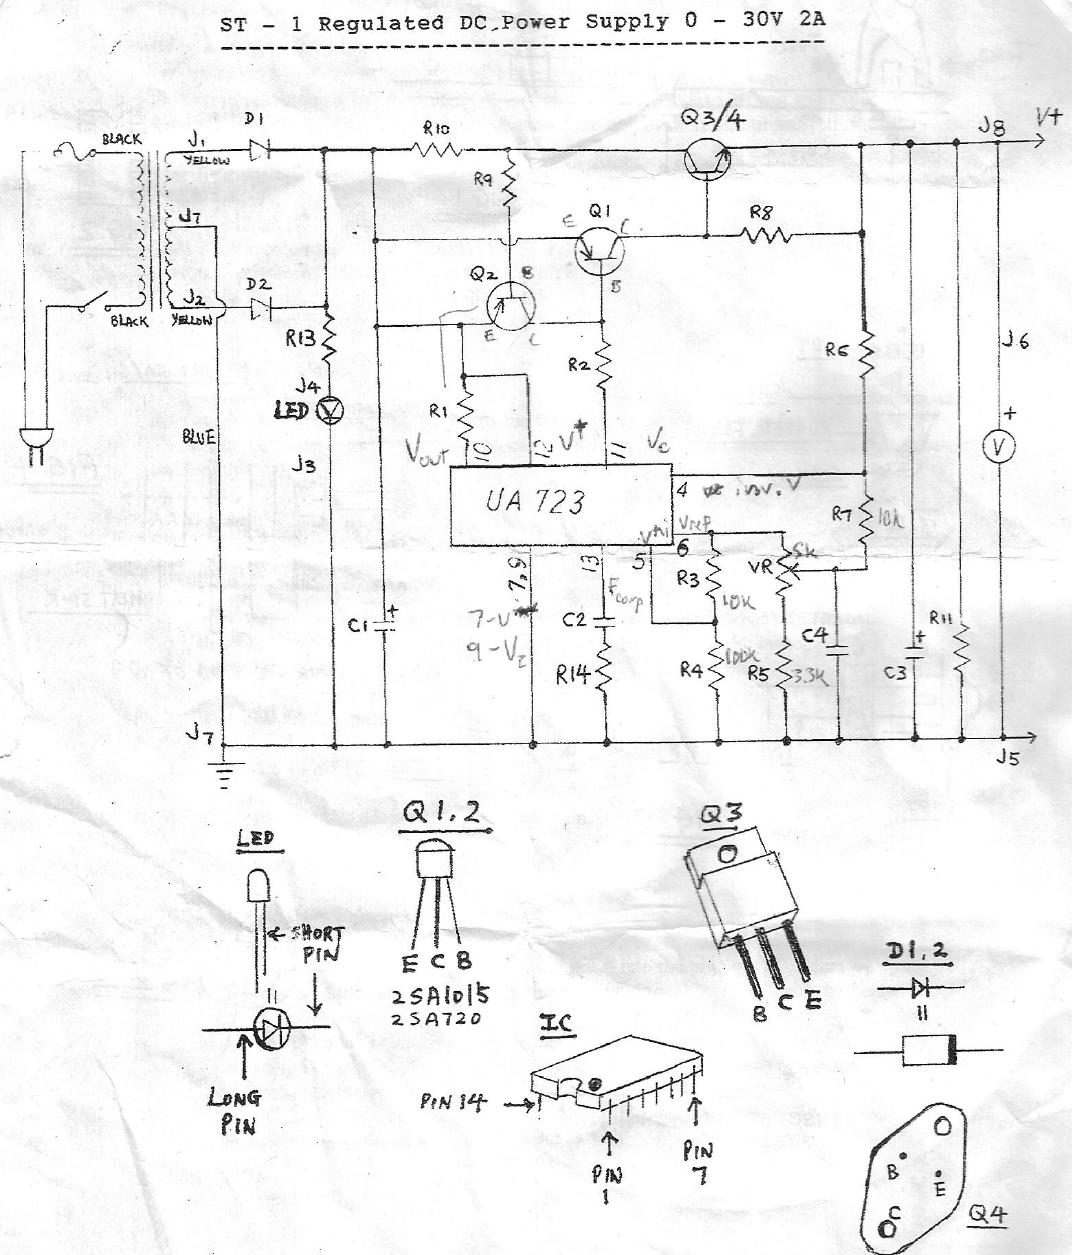 [TW_5824] Lm723 Variable Power Supply Circuit Design